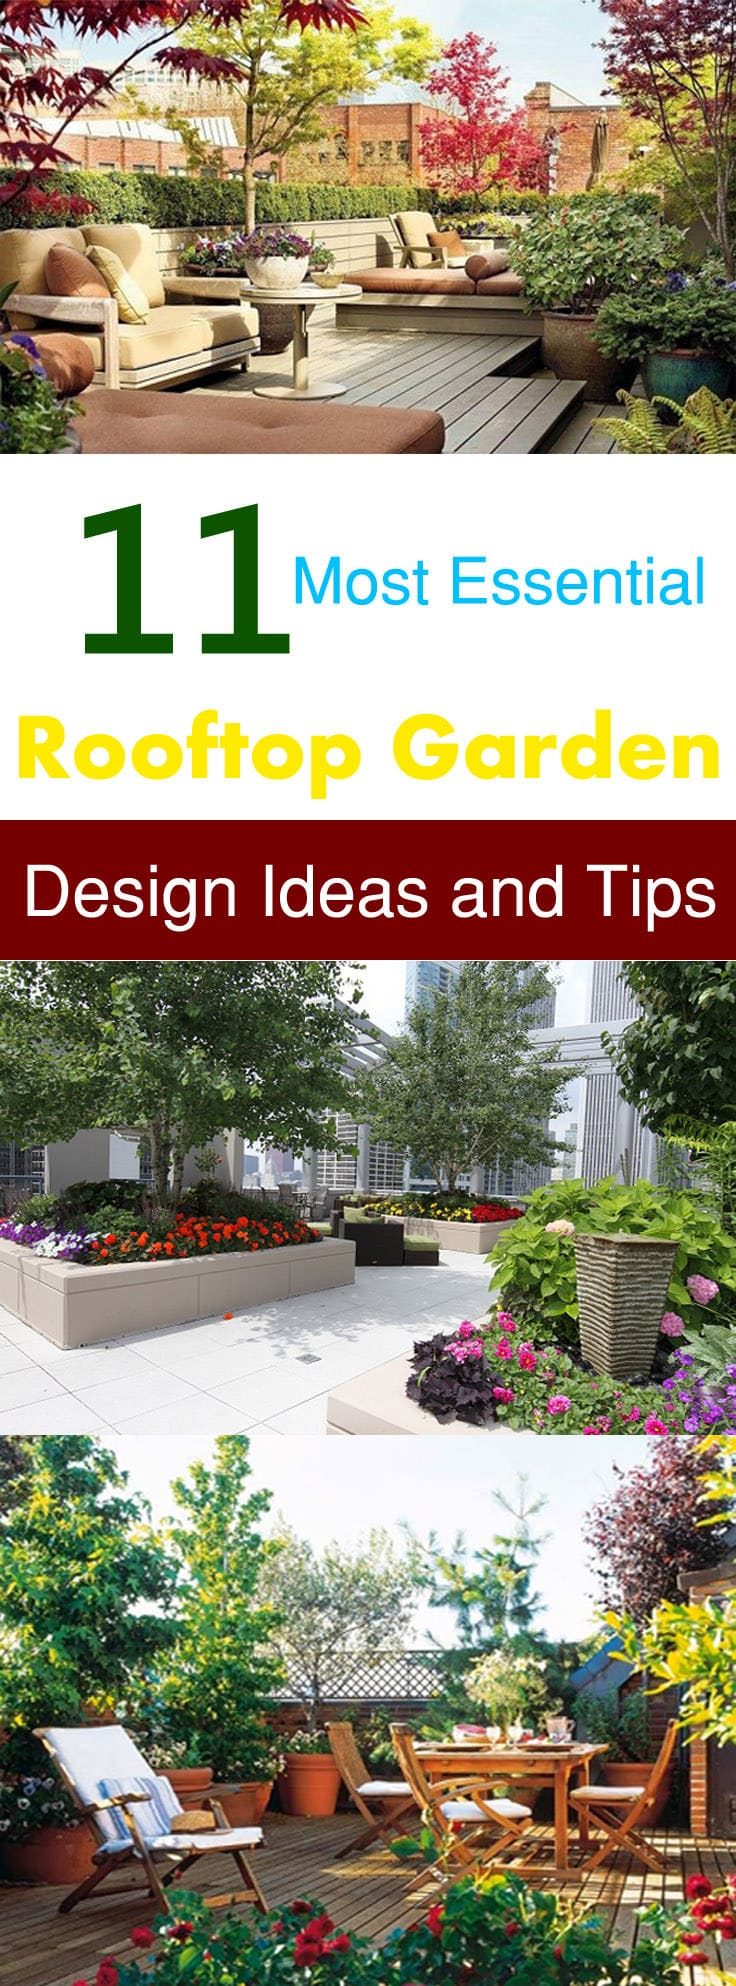 Tiny Home Designs: 11 Most Essential Rooftop Garden Design Ideas And Tips